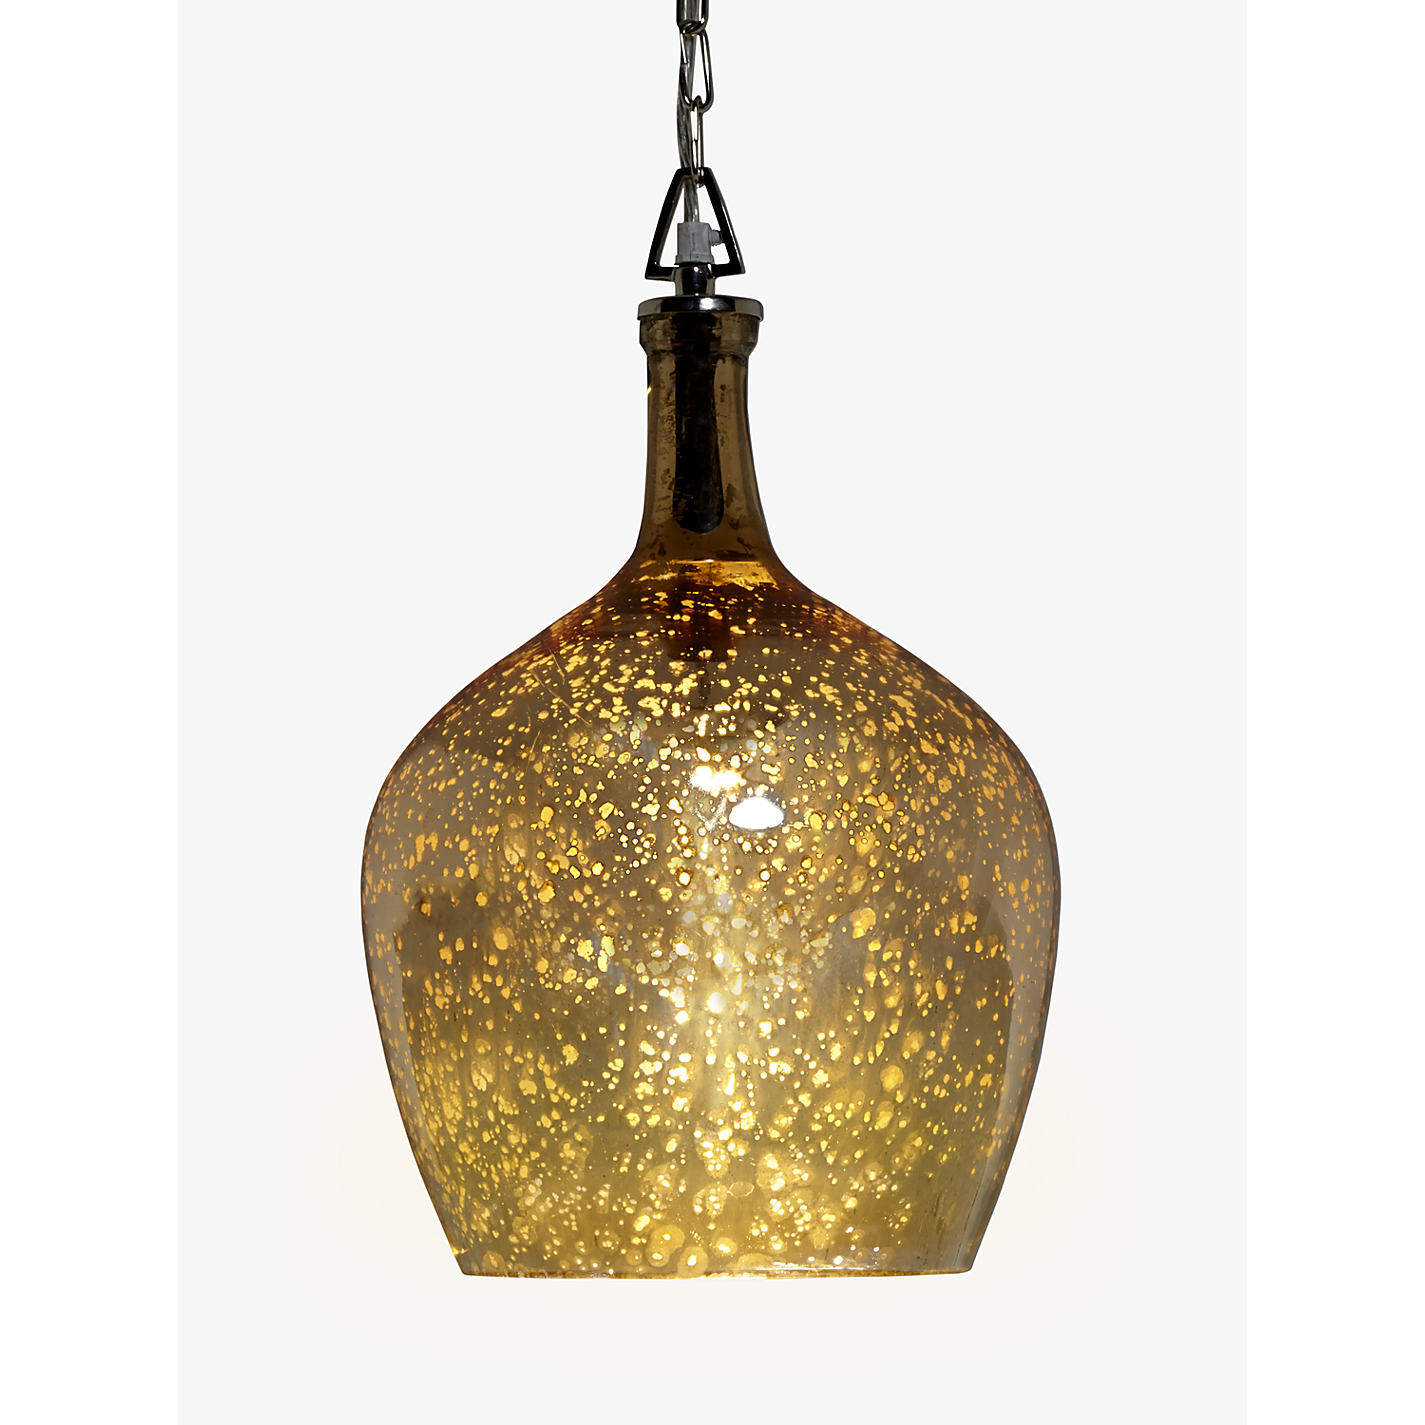 John lewis lighting pendants lighting ideas for Kitchen lighting ideas john lewis